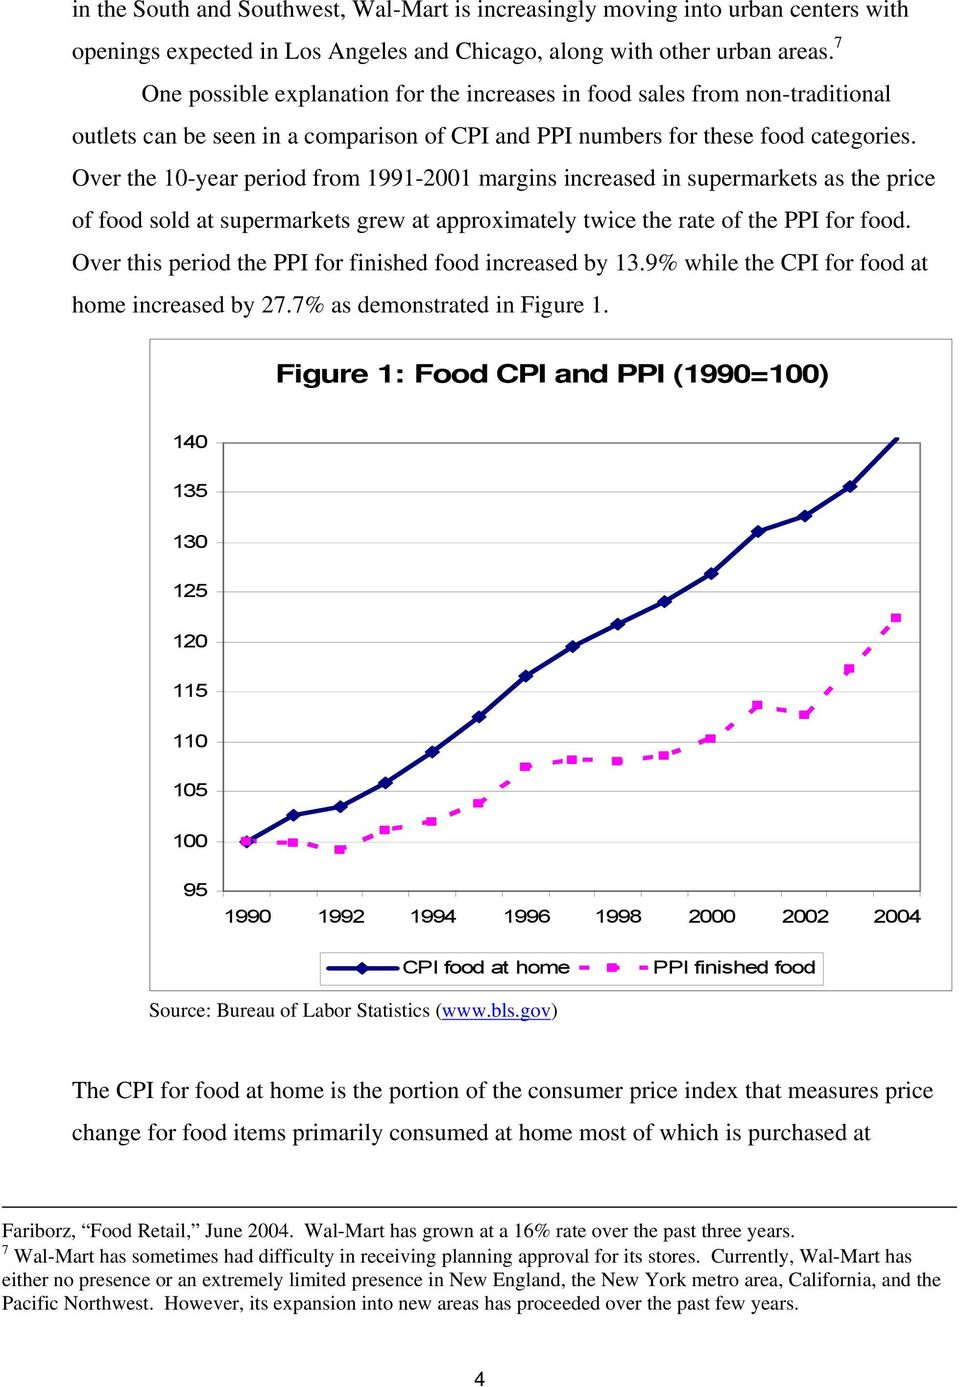 Over the 10-year period from 1991-2001 margins increased in supermarkets as the price of food sold at supermarkets grew at approximately twice the rate of the PPI for food.